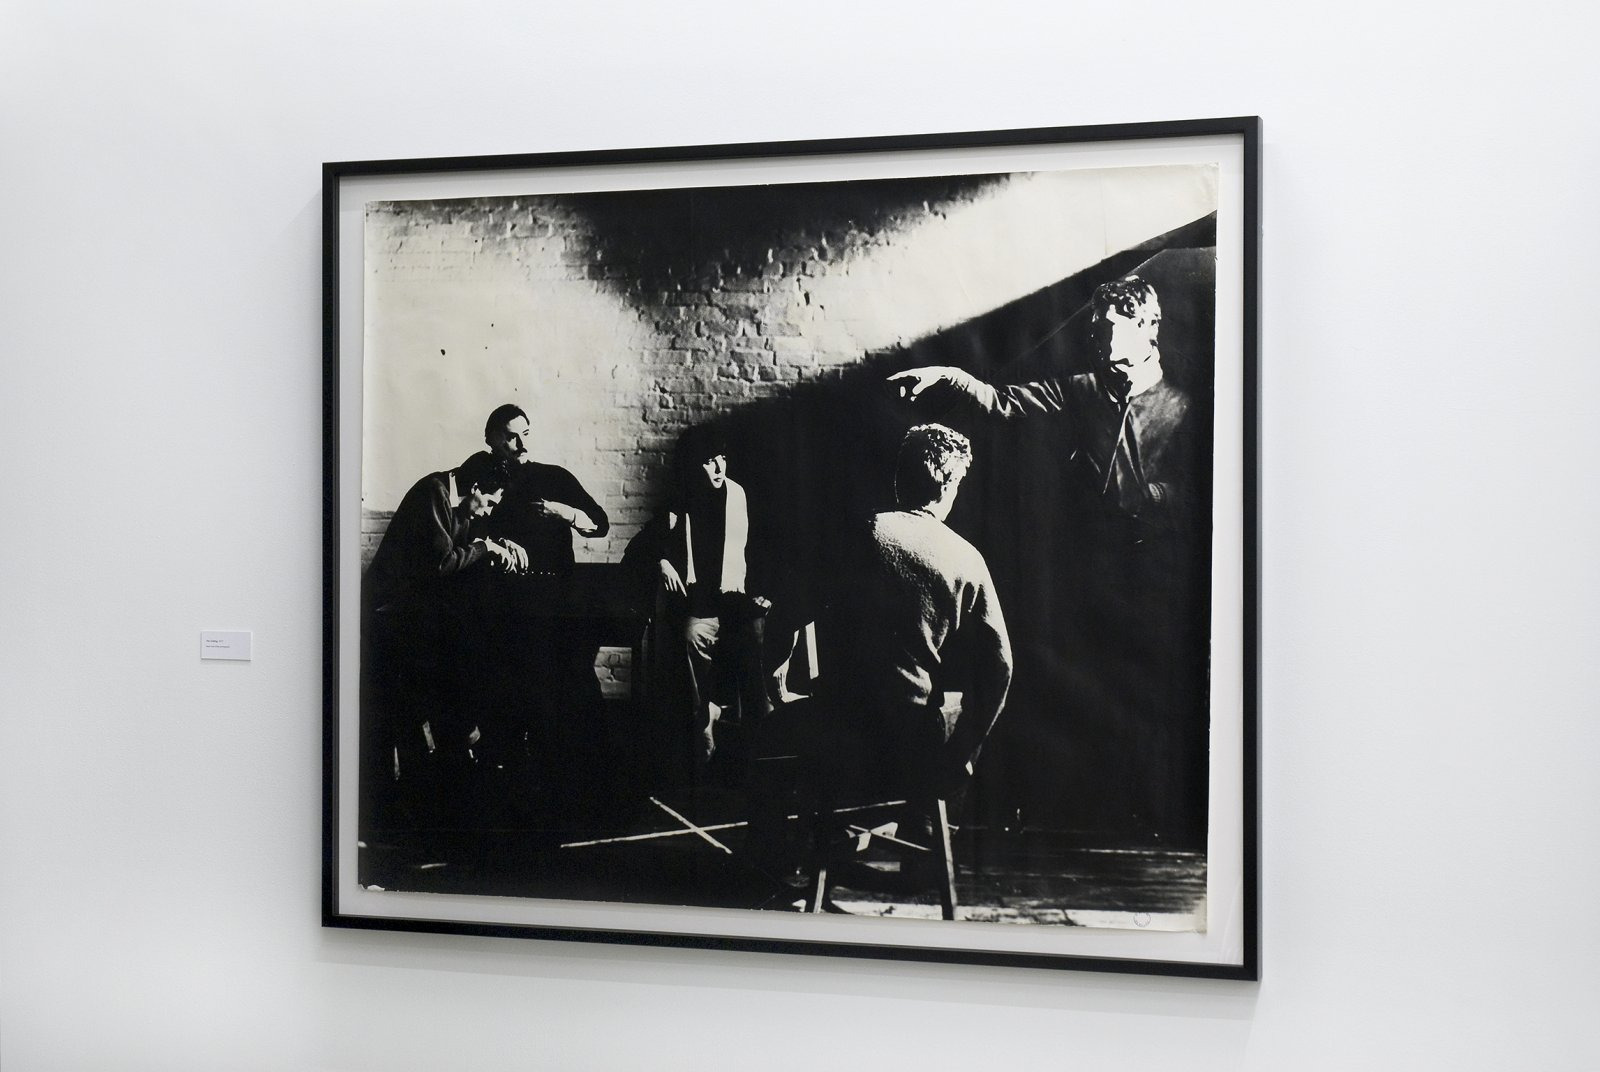 Ian Wallace, The Calling, 1977, black and white photograph, 47 x 58 in. (118 x 146 cm) by Ian Wallace